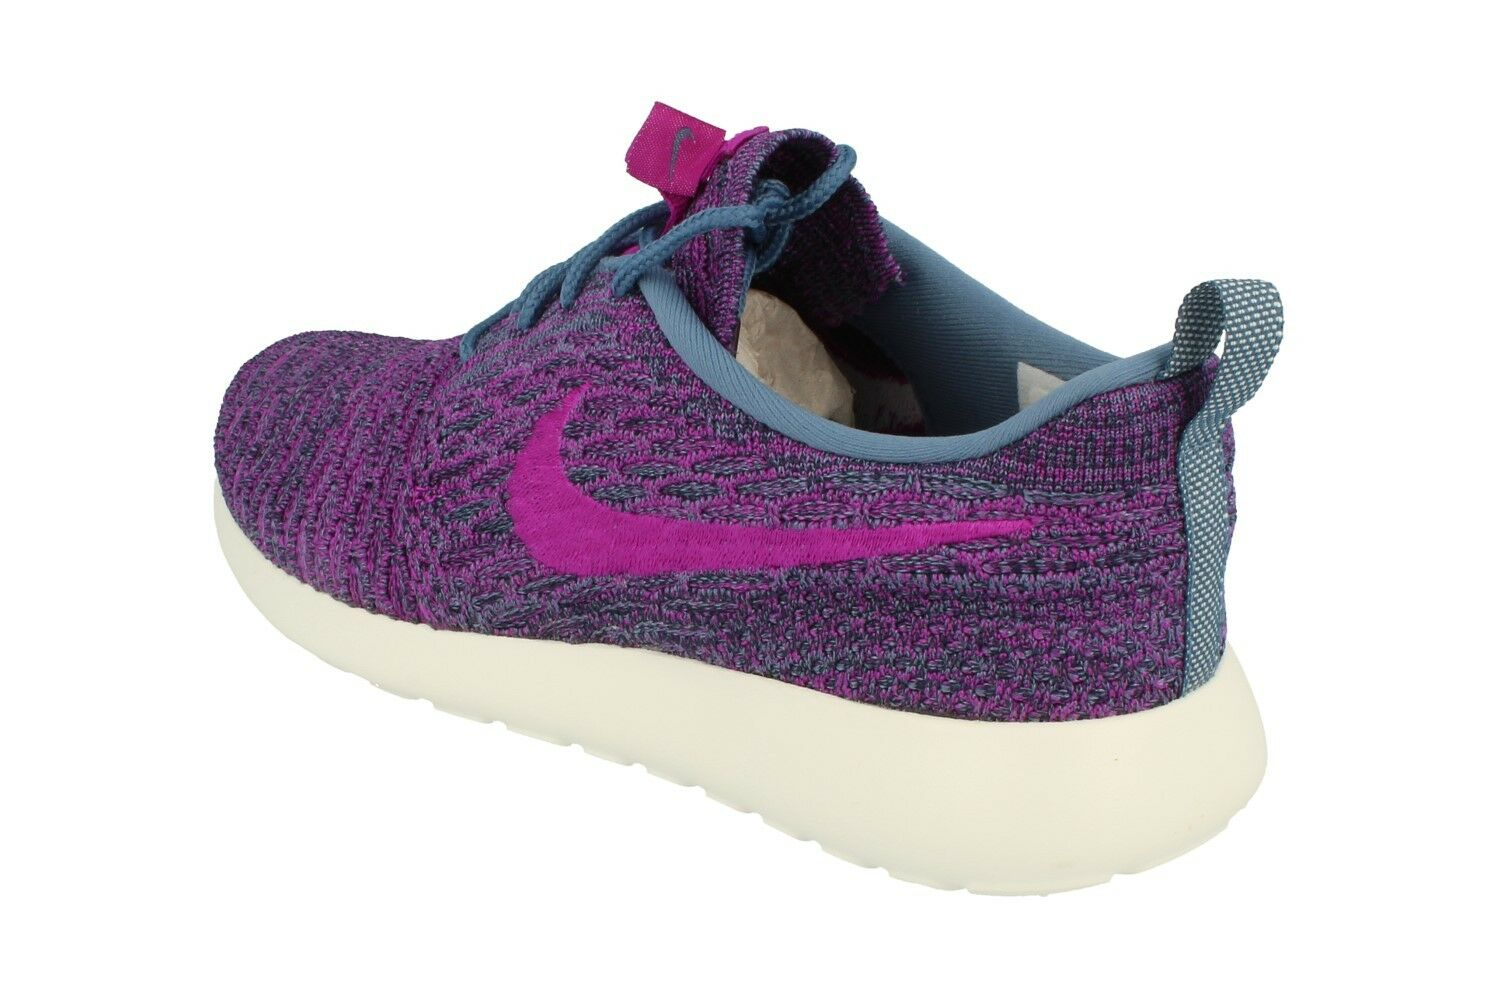 ce736d7b6958 ... Nike Womens rosherun flyknit running trainers 704927 sneakers shoes  shoes shoes 405 158c0f ...